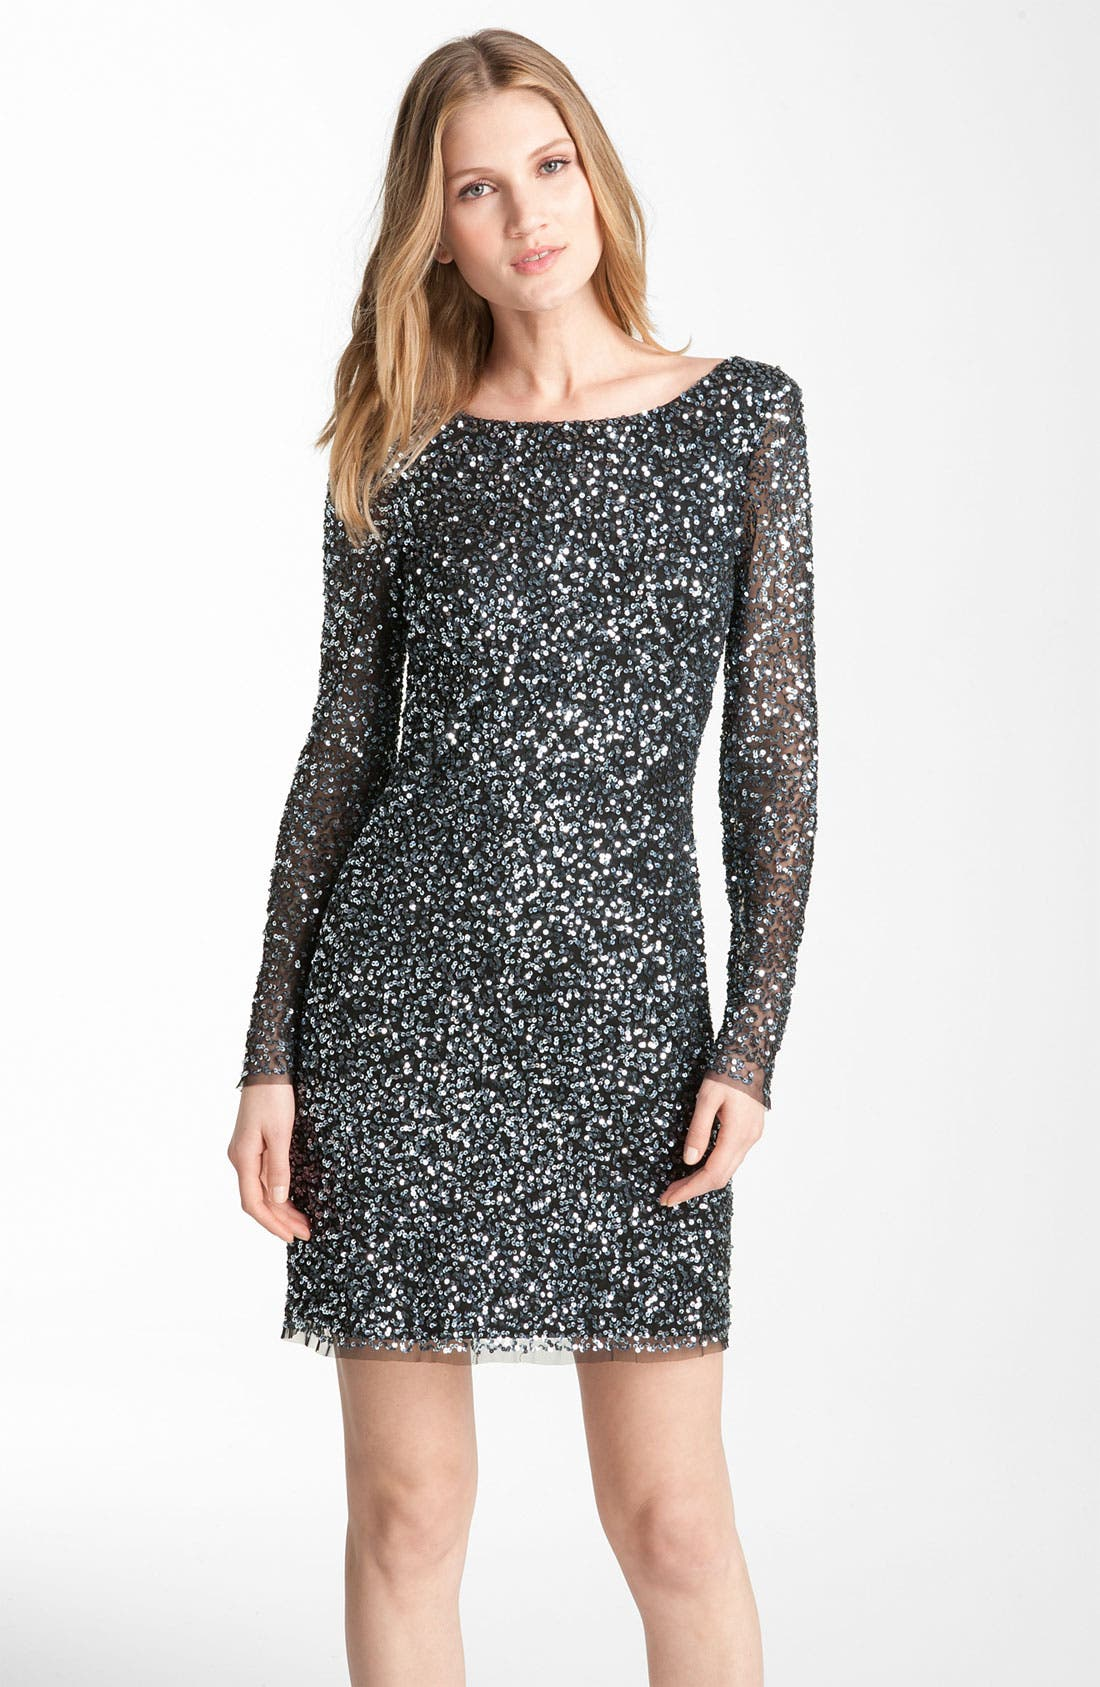 Alternate Image 1 Selected - Adrianna Papell Sequin Shift Dress